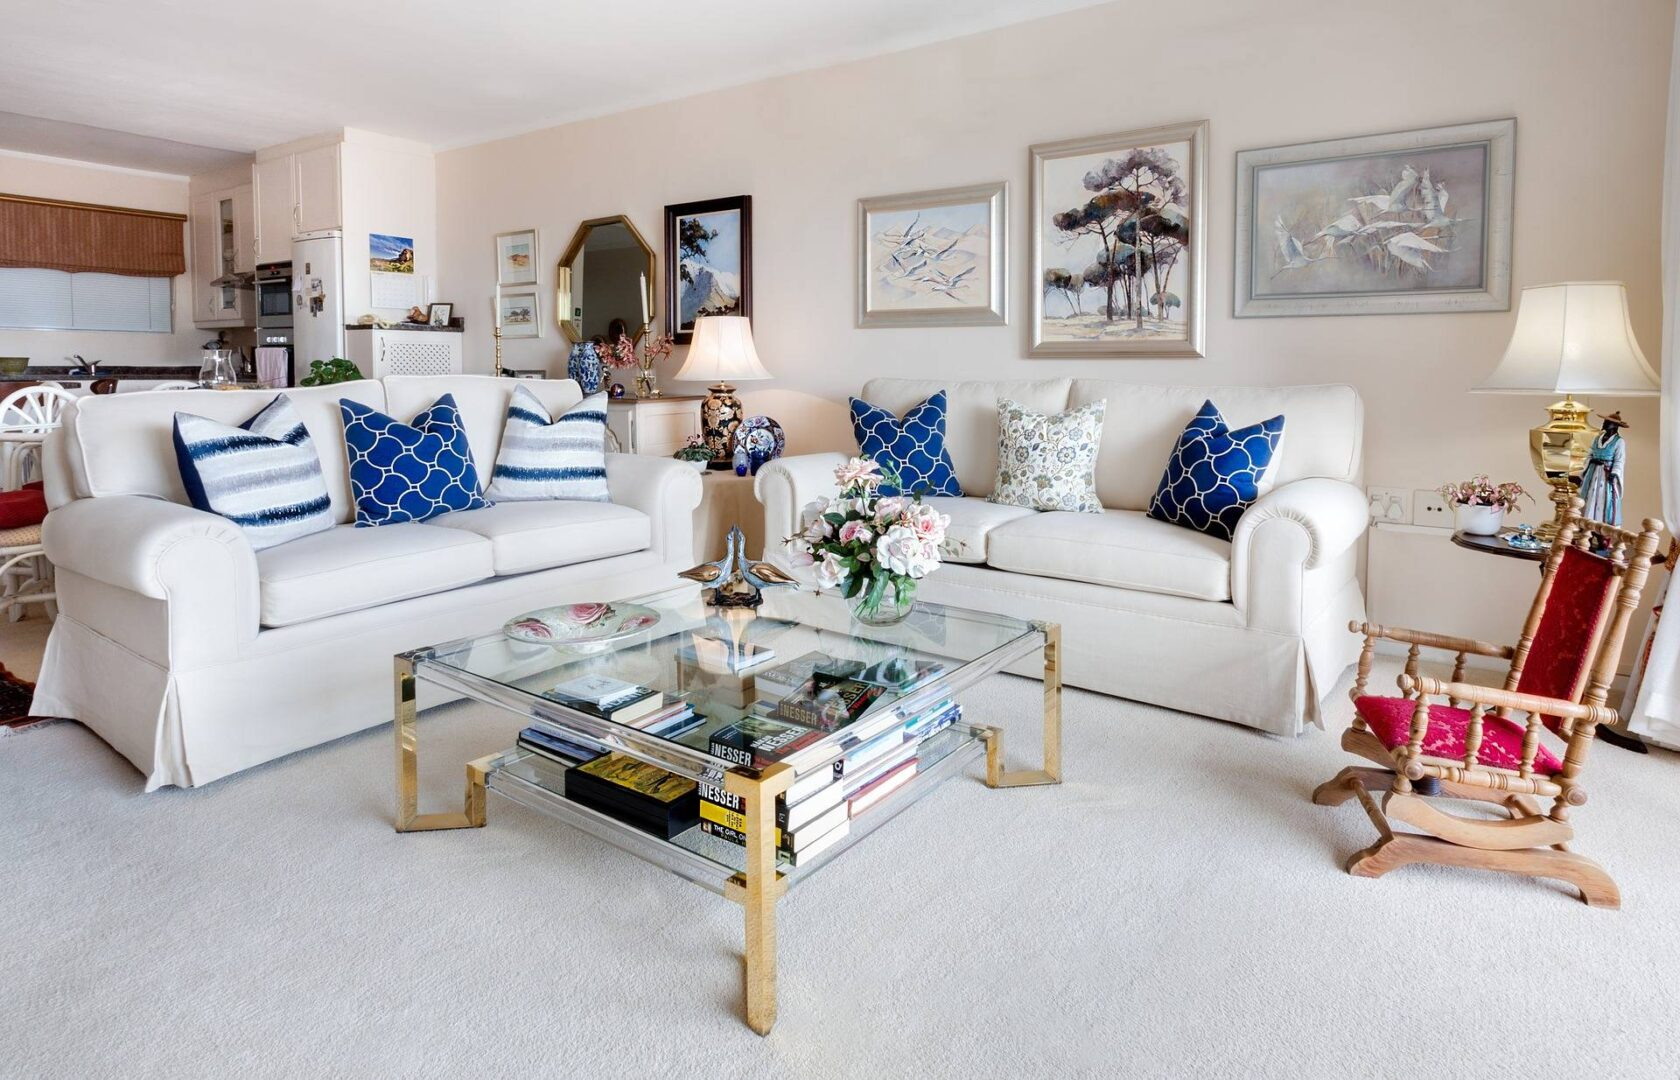 How Interior Decorator Can Help to Design a Home? - Insign ...